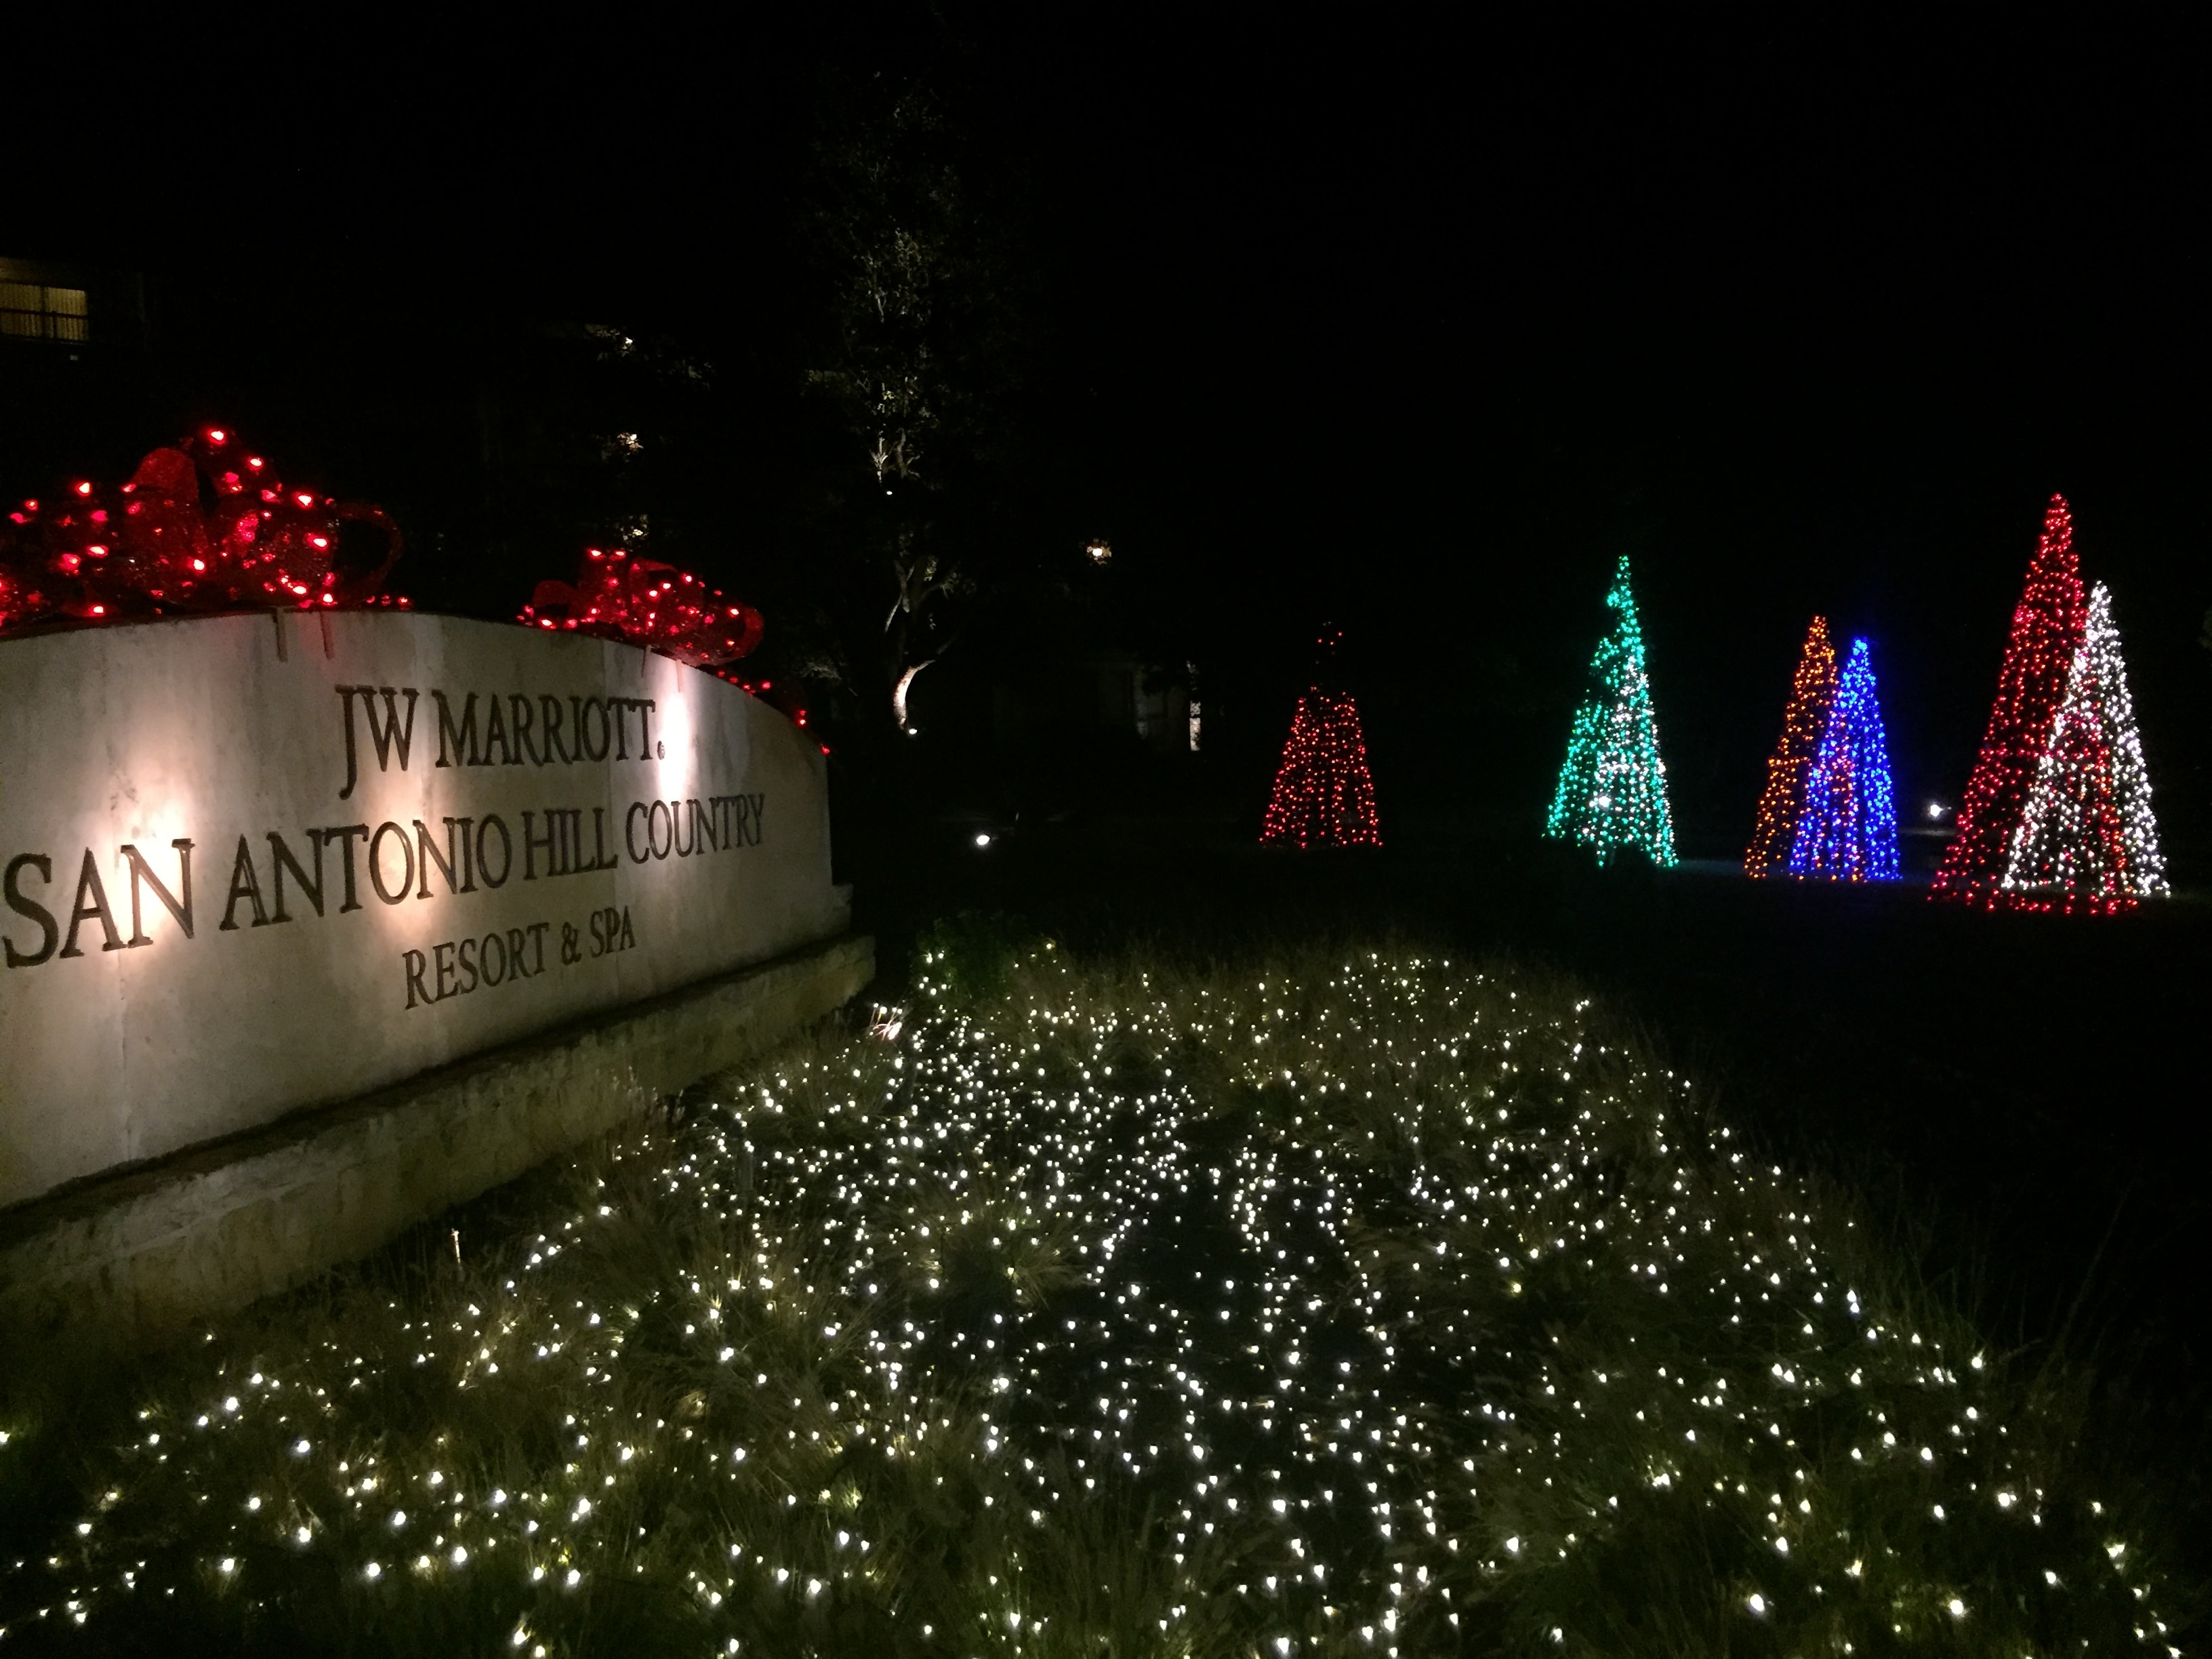 Hill Country Holiday Lights at JWM Entry